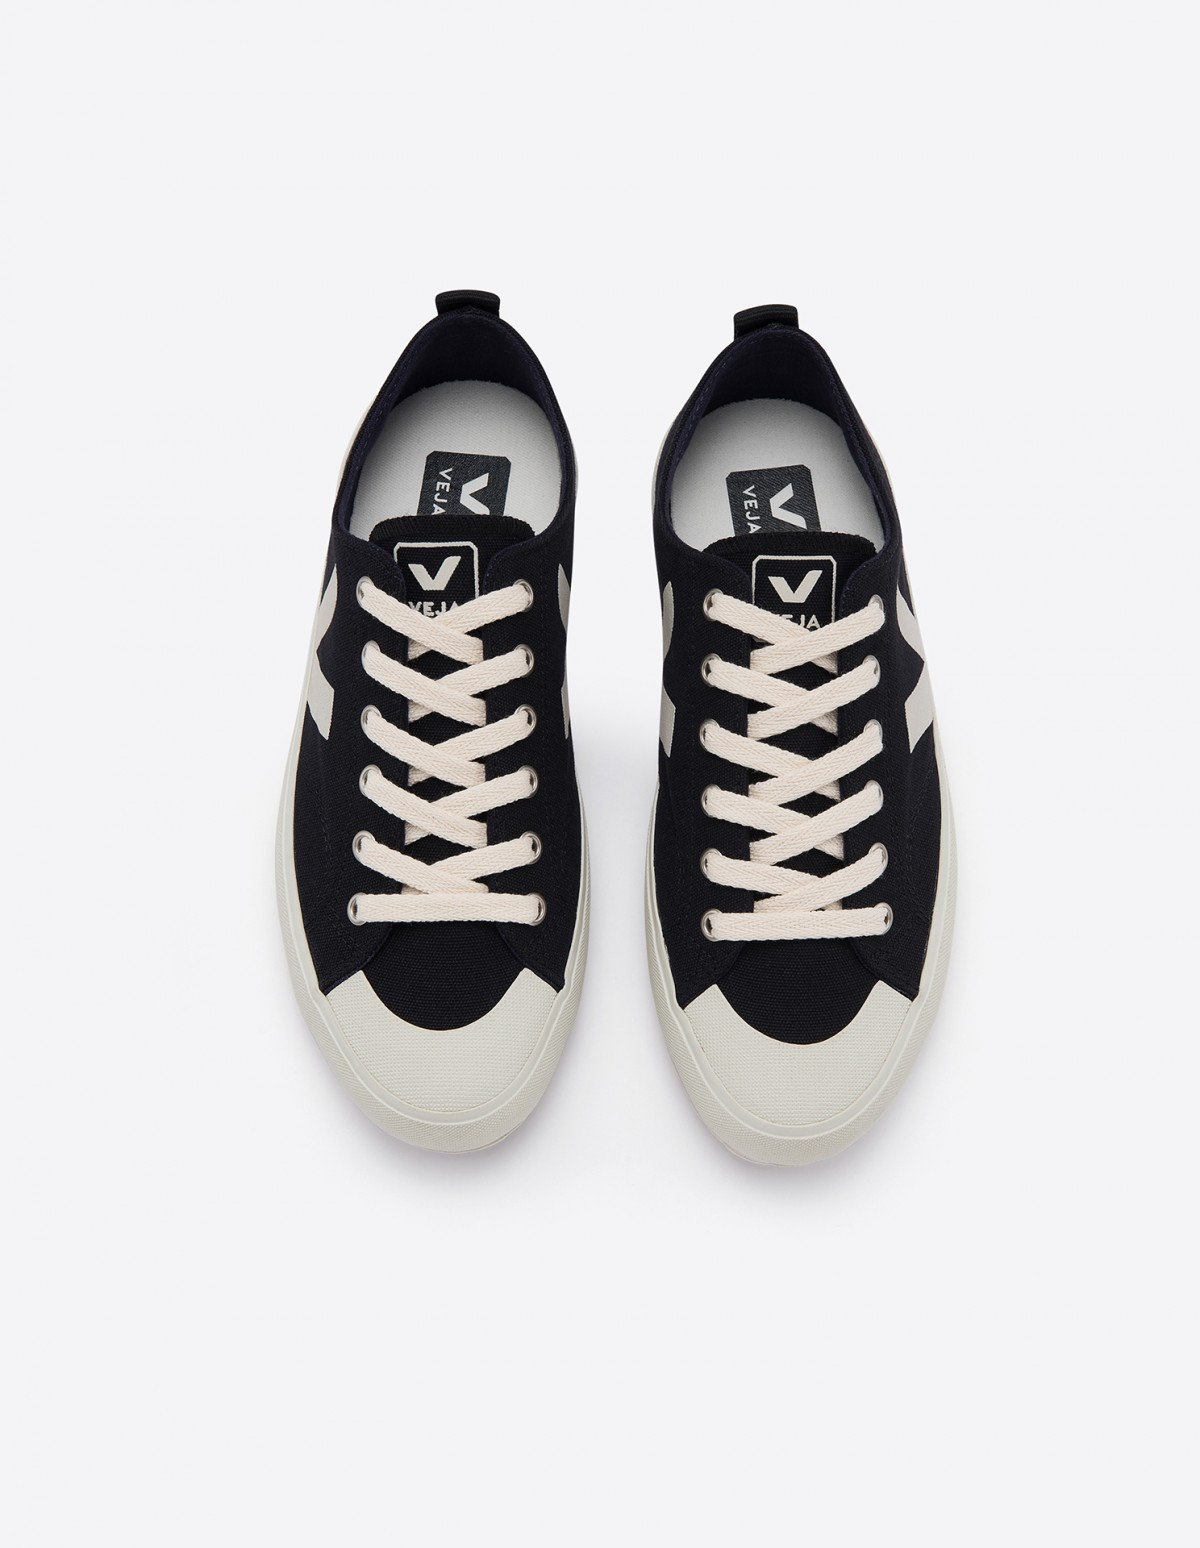 Veja Nova Canvas in Black Pierre